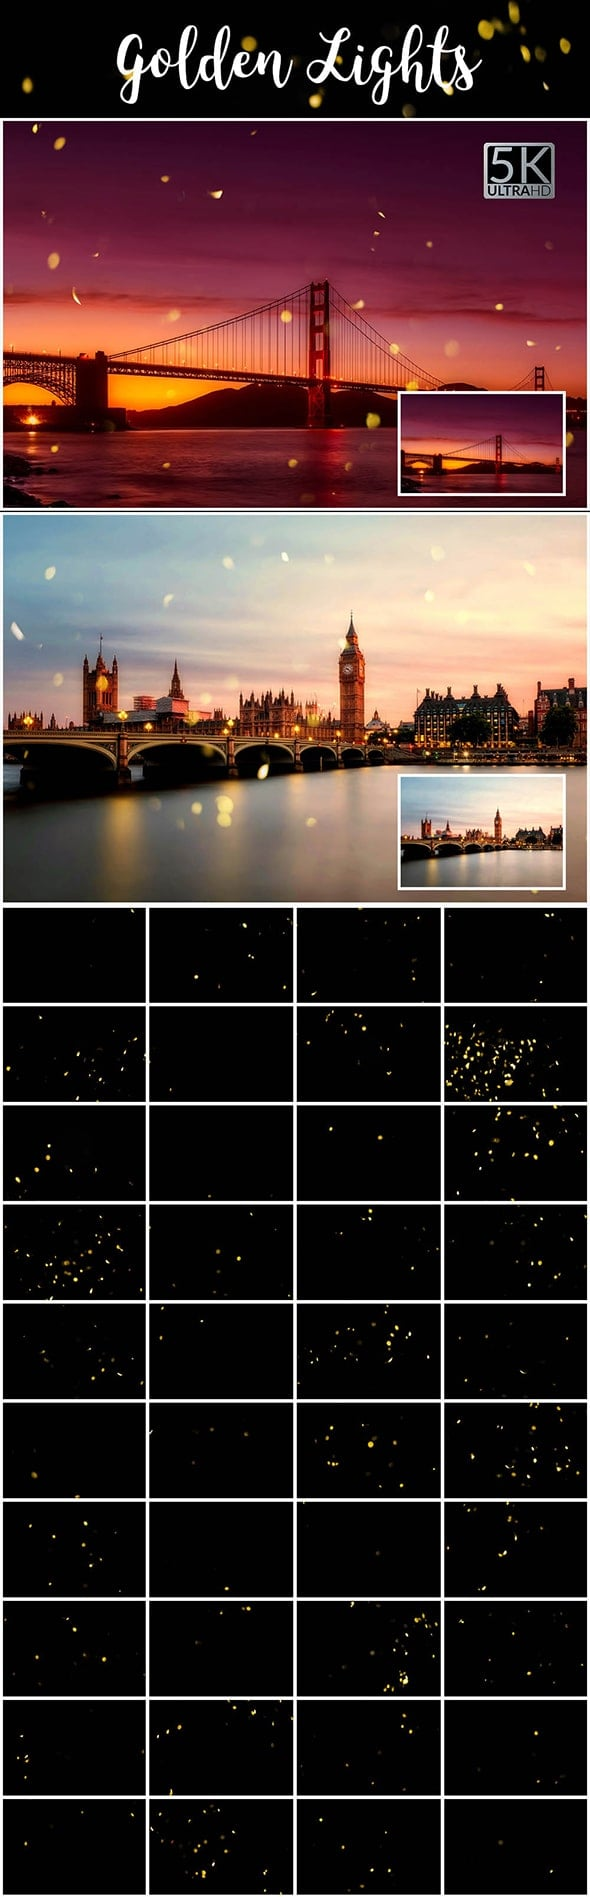 Over 11 400 Aesthetic Overlays Bundle SPECIAL OFF 98% - 38 Golden Lights min